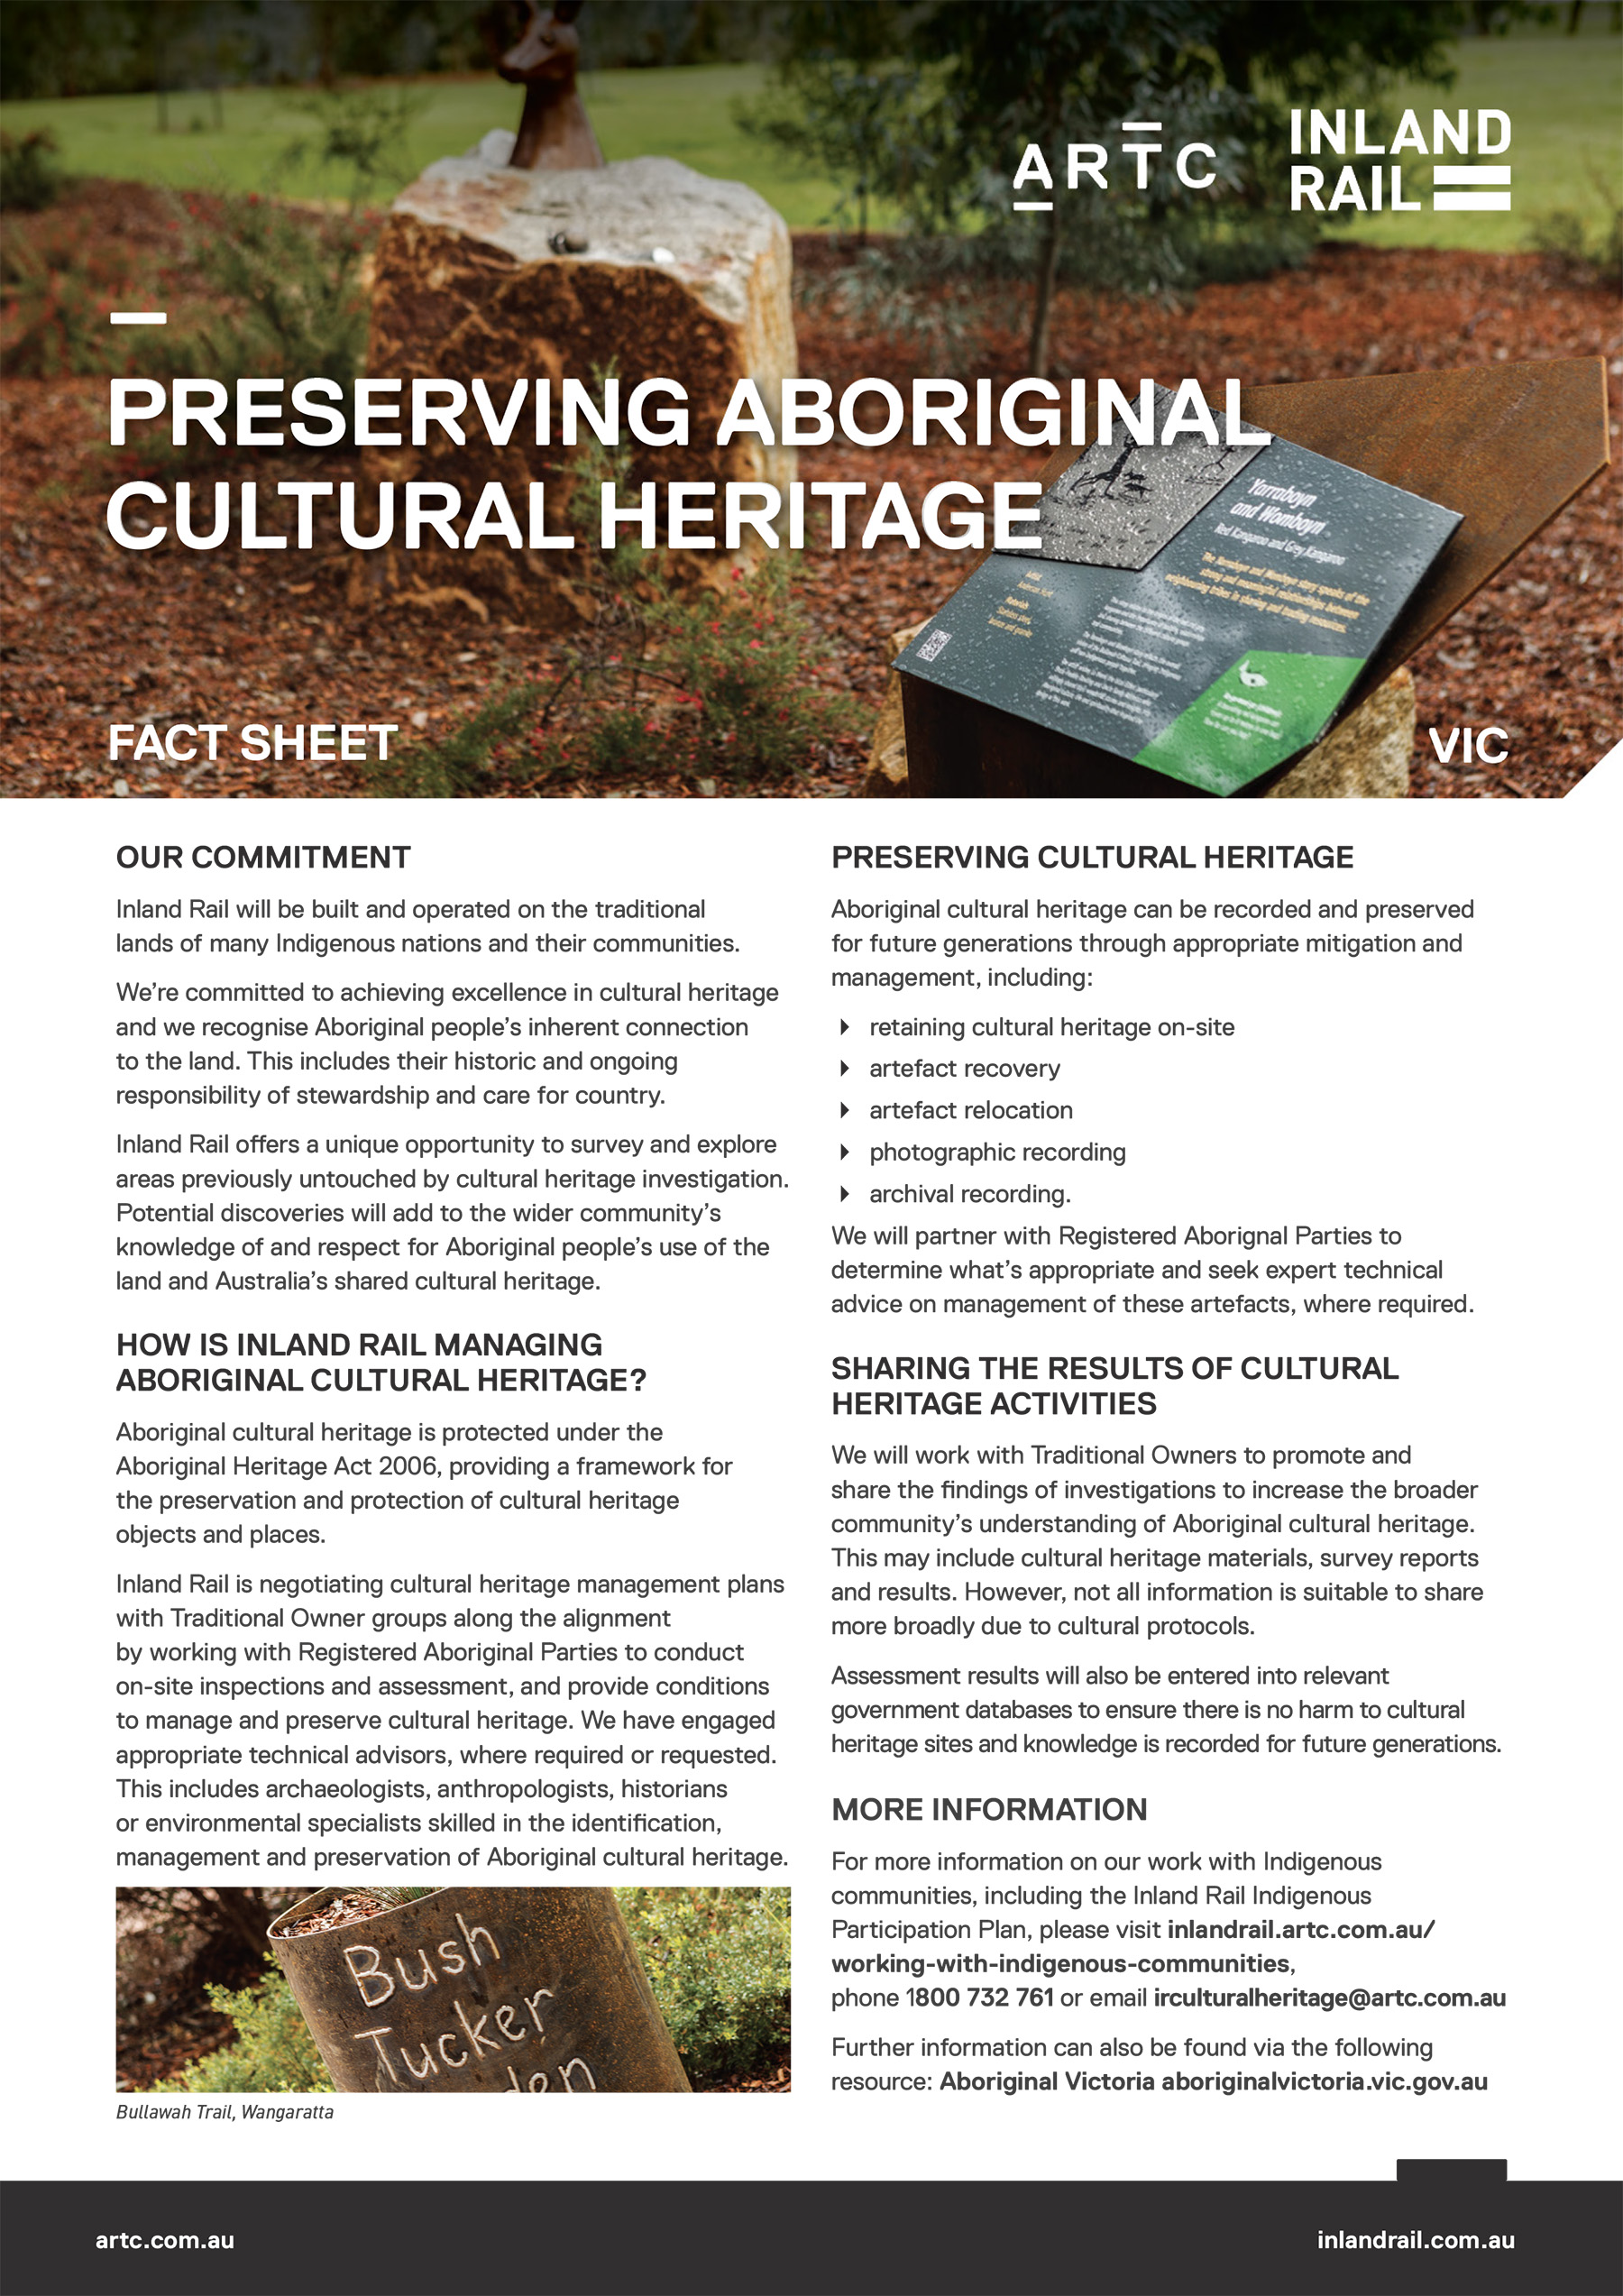 Preserving Aboriginal Cultural Heritage - Fact Sheet